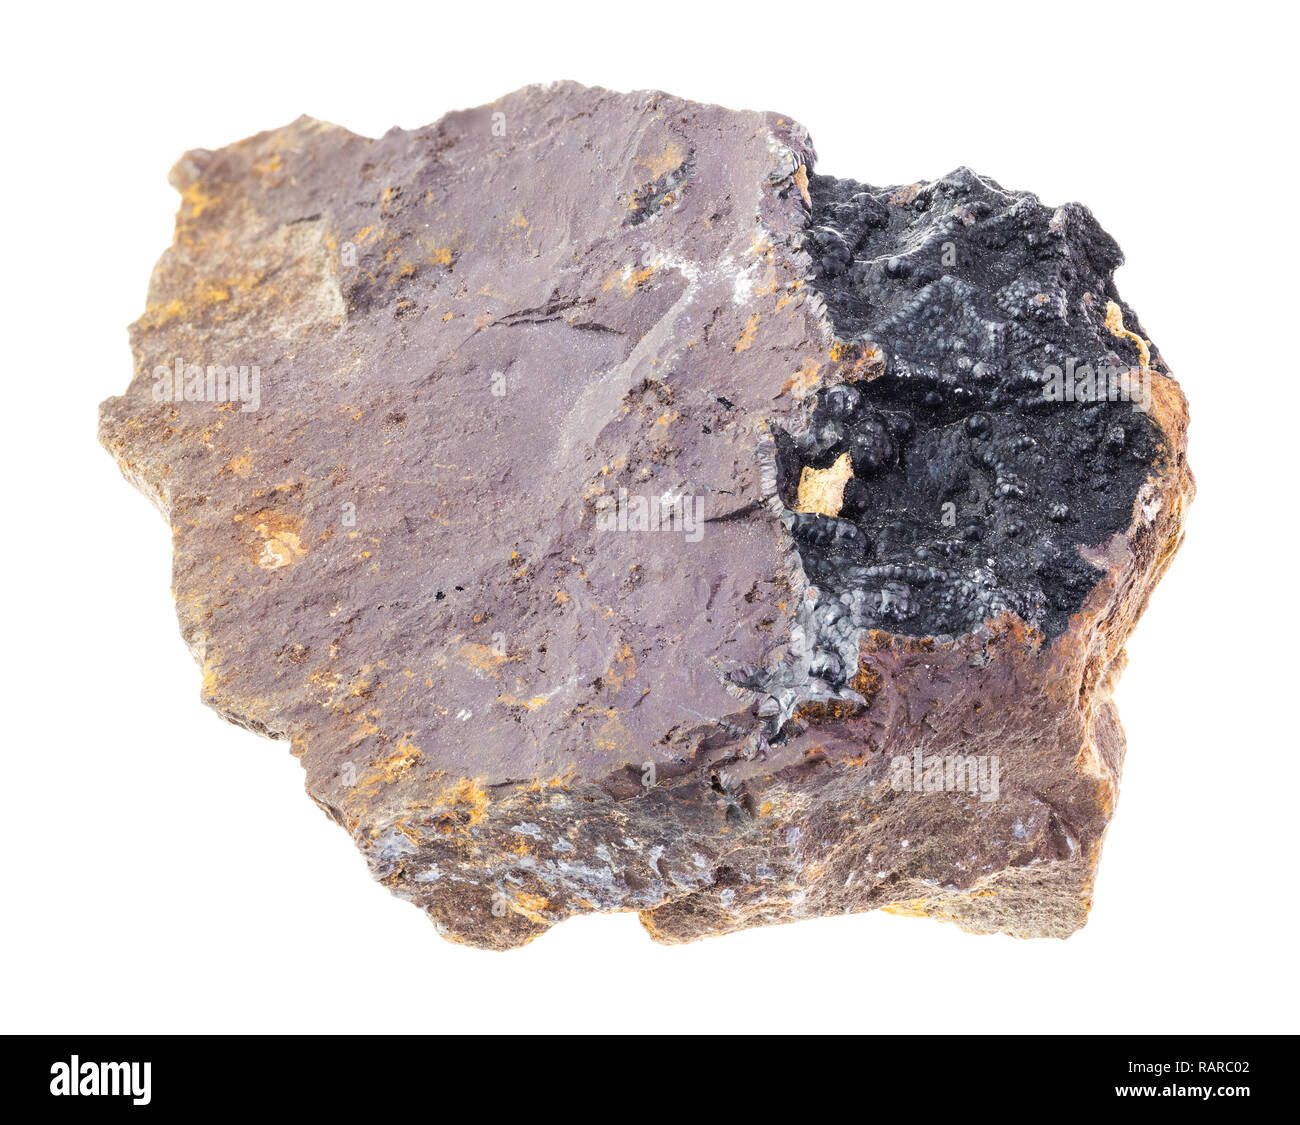 macro photography of natural mineral from geological collection - black Goethite in rough Limonite stone on white background - Stock Image